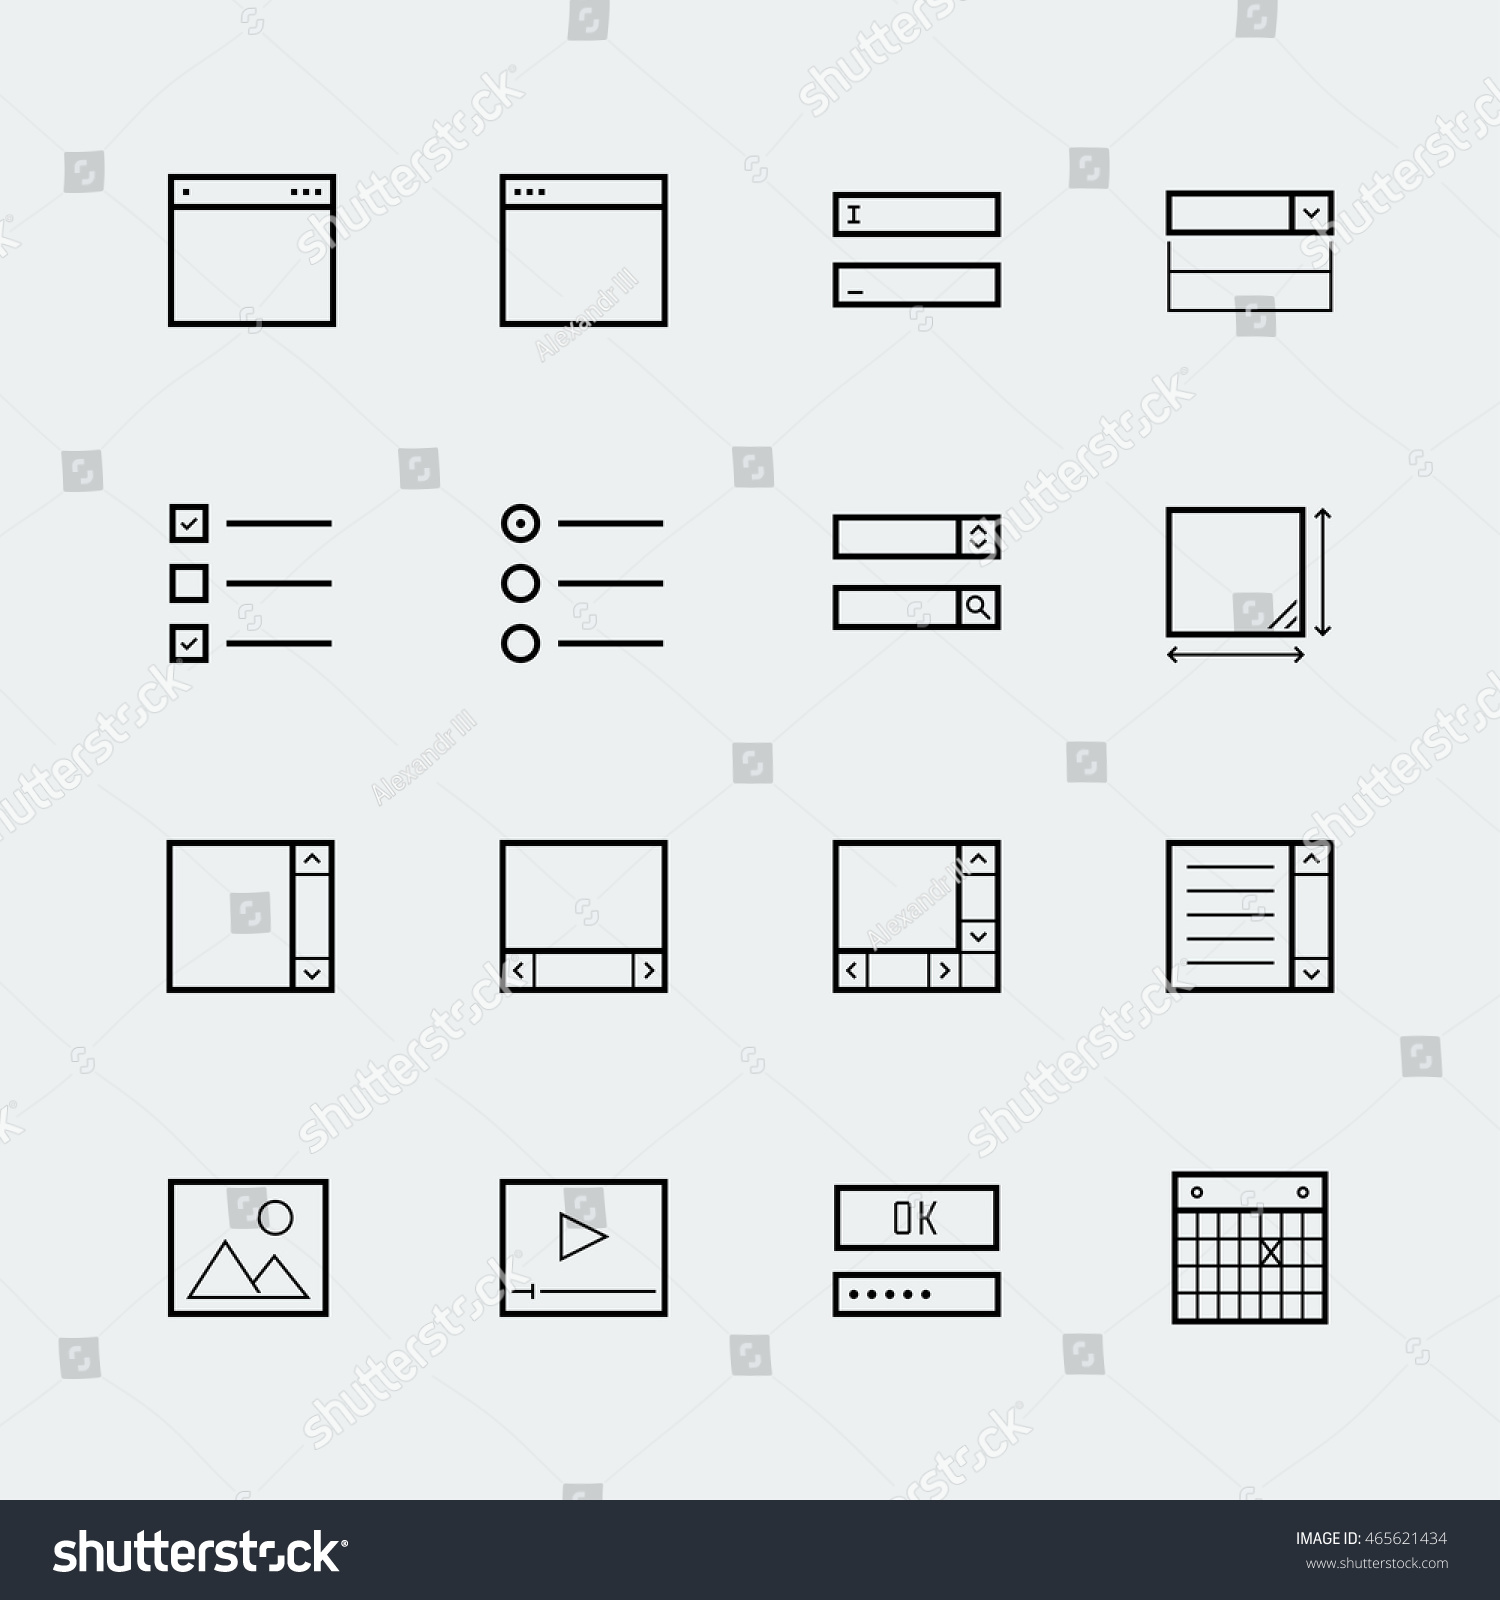 Web App Form Elements Icon Set Stock Vector (Royalty Free) 465621434